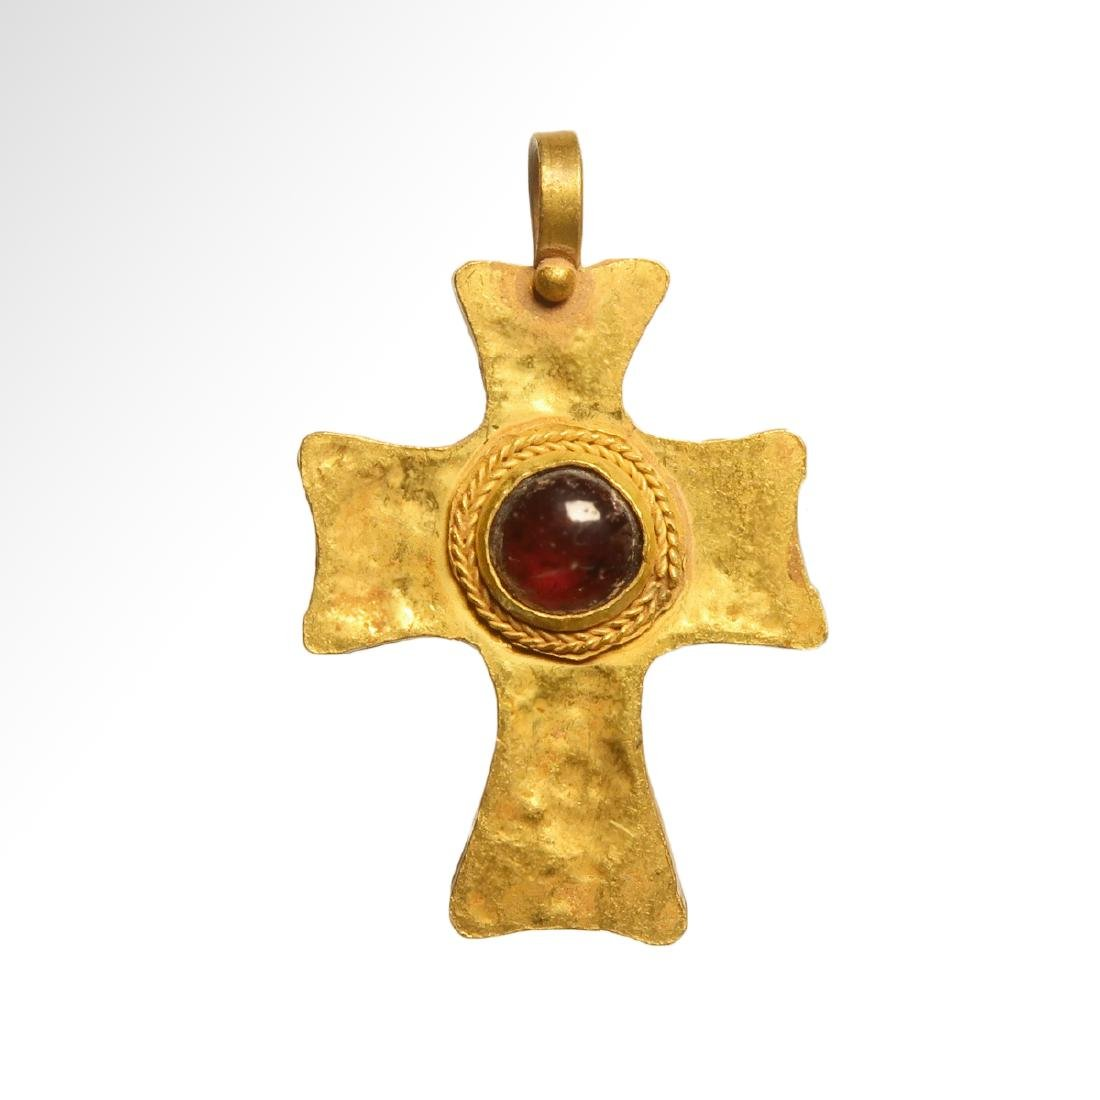 Byzantine Gold and Garnet Cross, 7th-9th Century A.D.